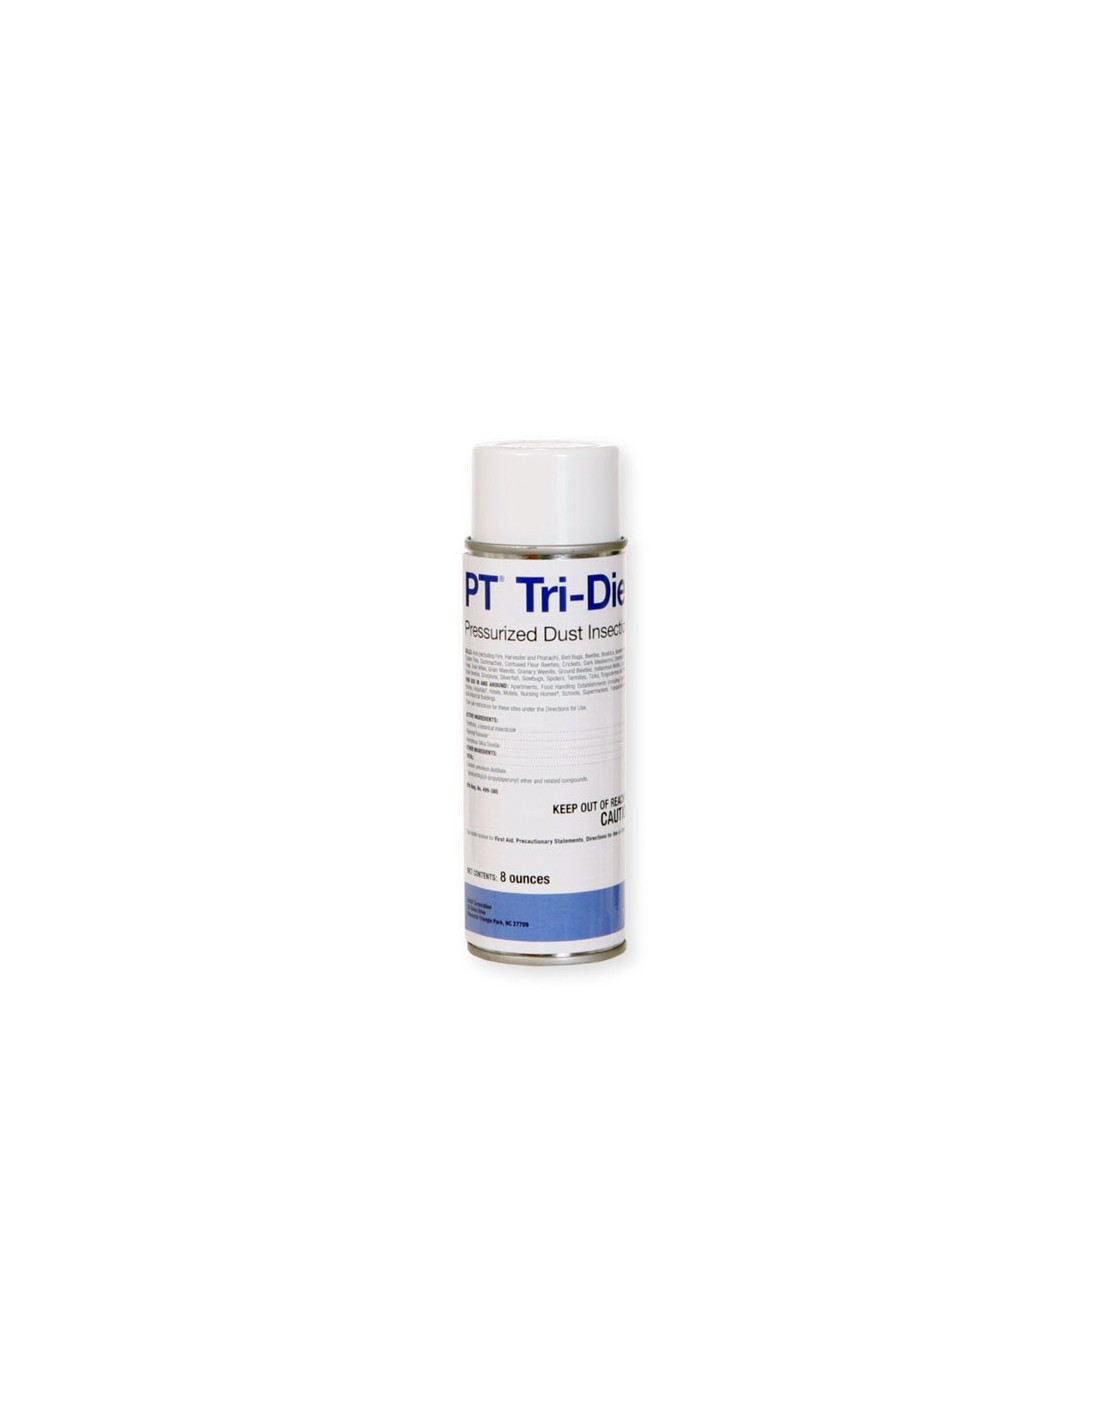 PT Tri Die Pressurized Insecticide Questions & Answers